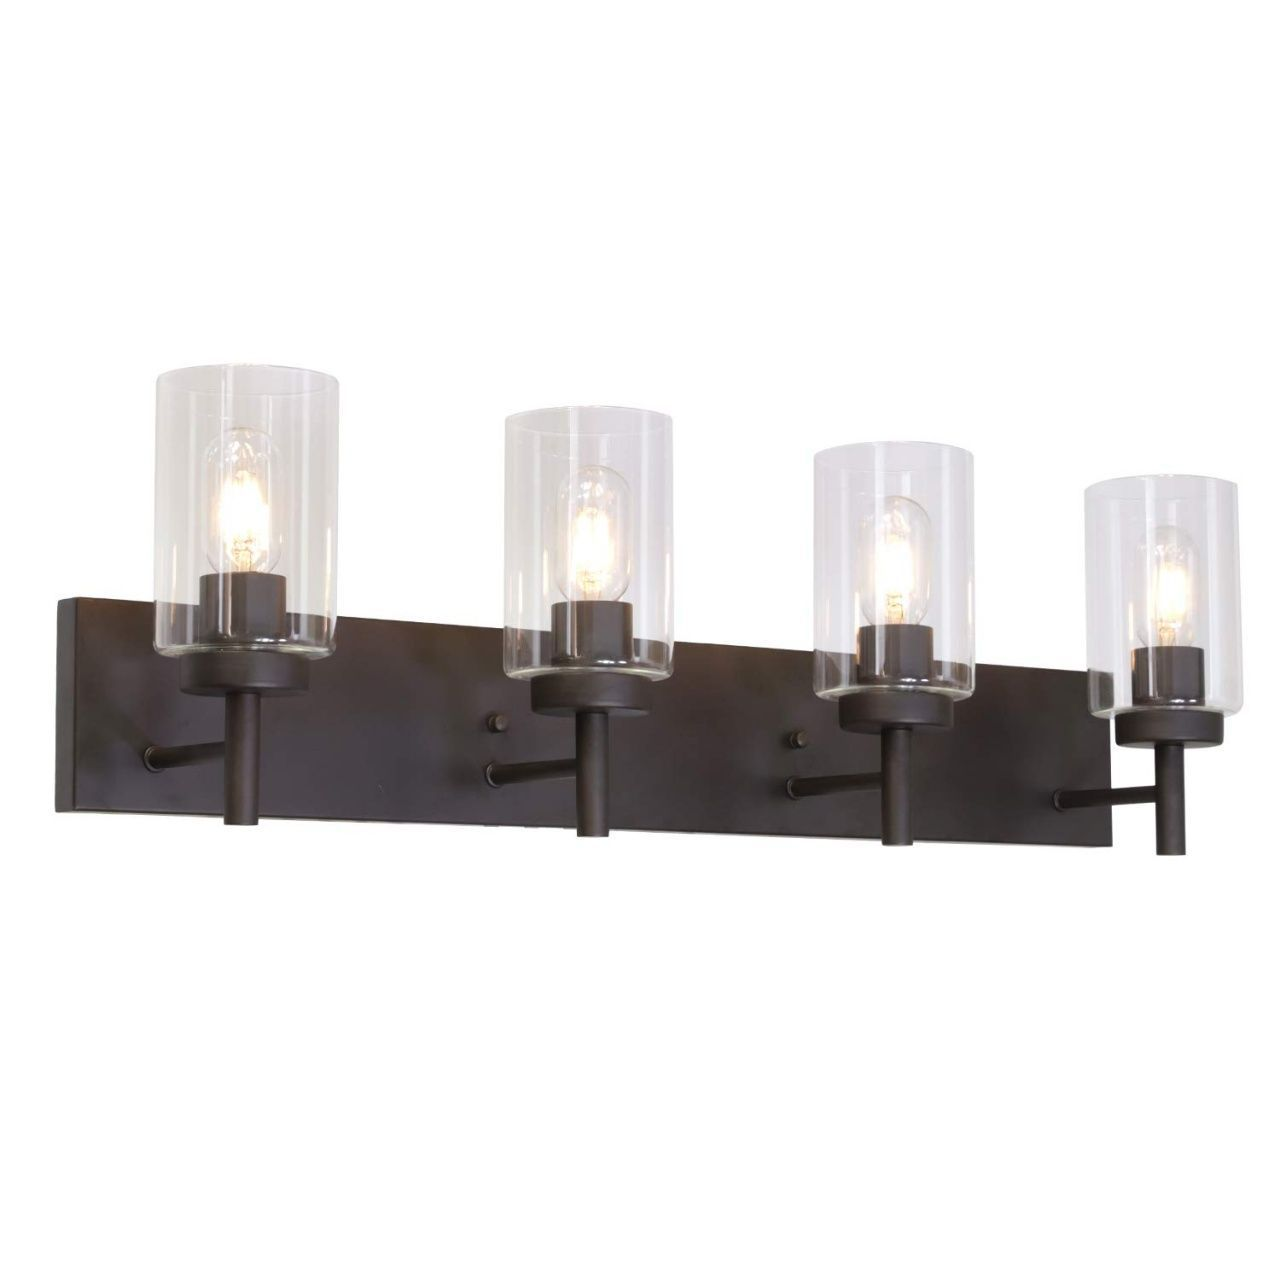 Photo of Oil Rubbed Bronze Bathroom Lighting#bathroom #bronze #lighting #oil #rubbed